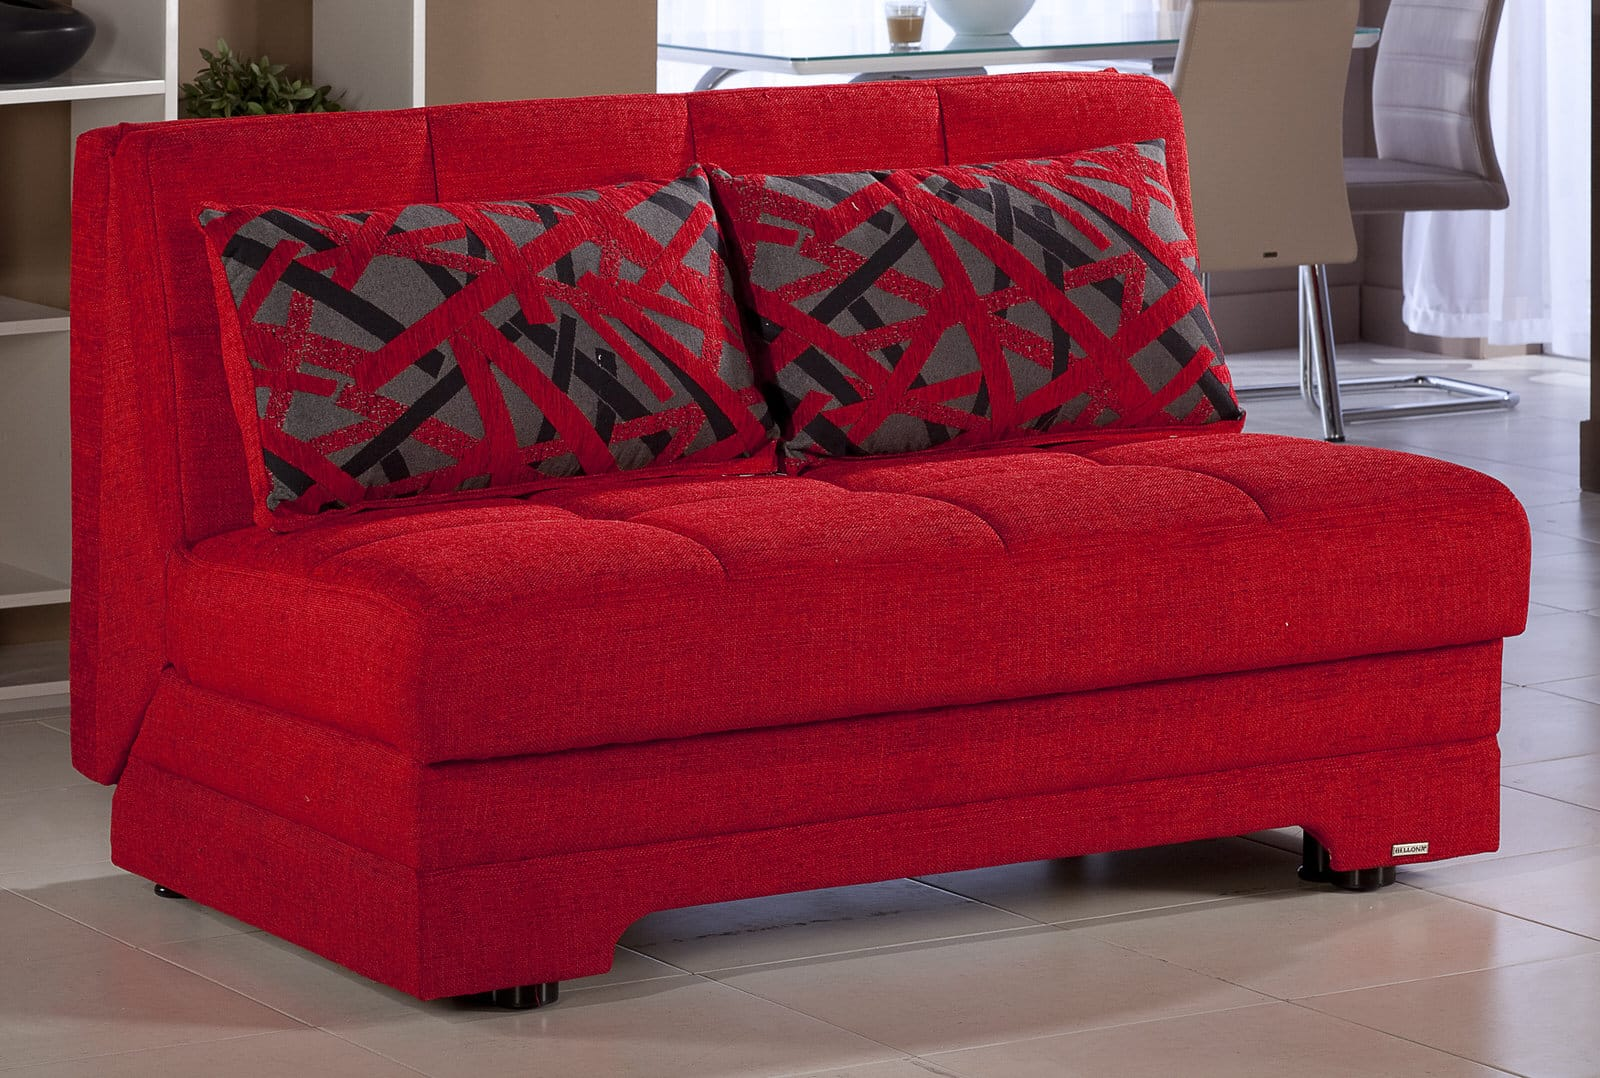 Chair Sleeper Twist Story Red Loveseat Sleeper By Istikbal (sunset)